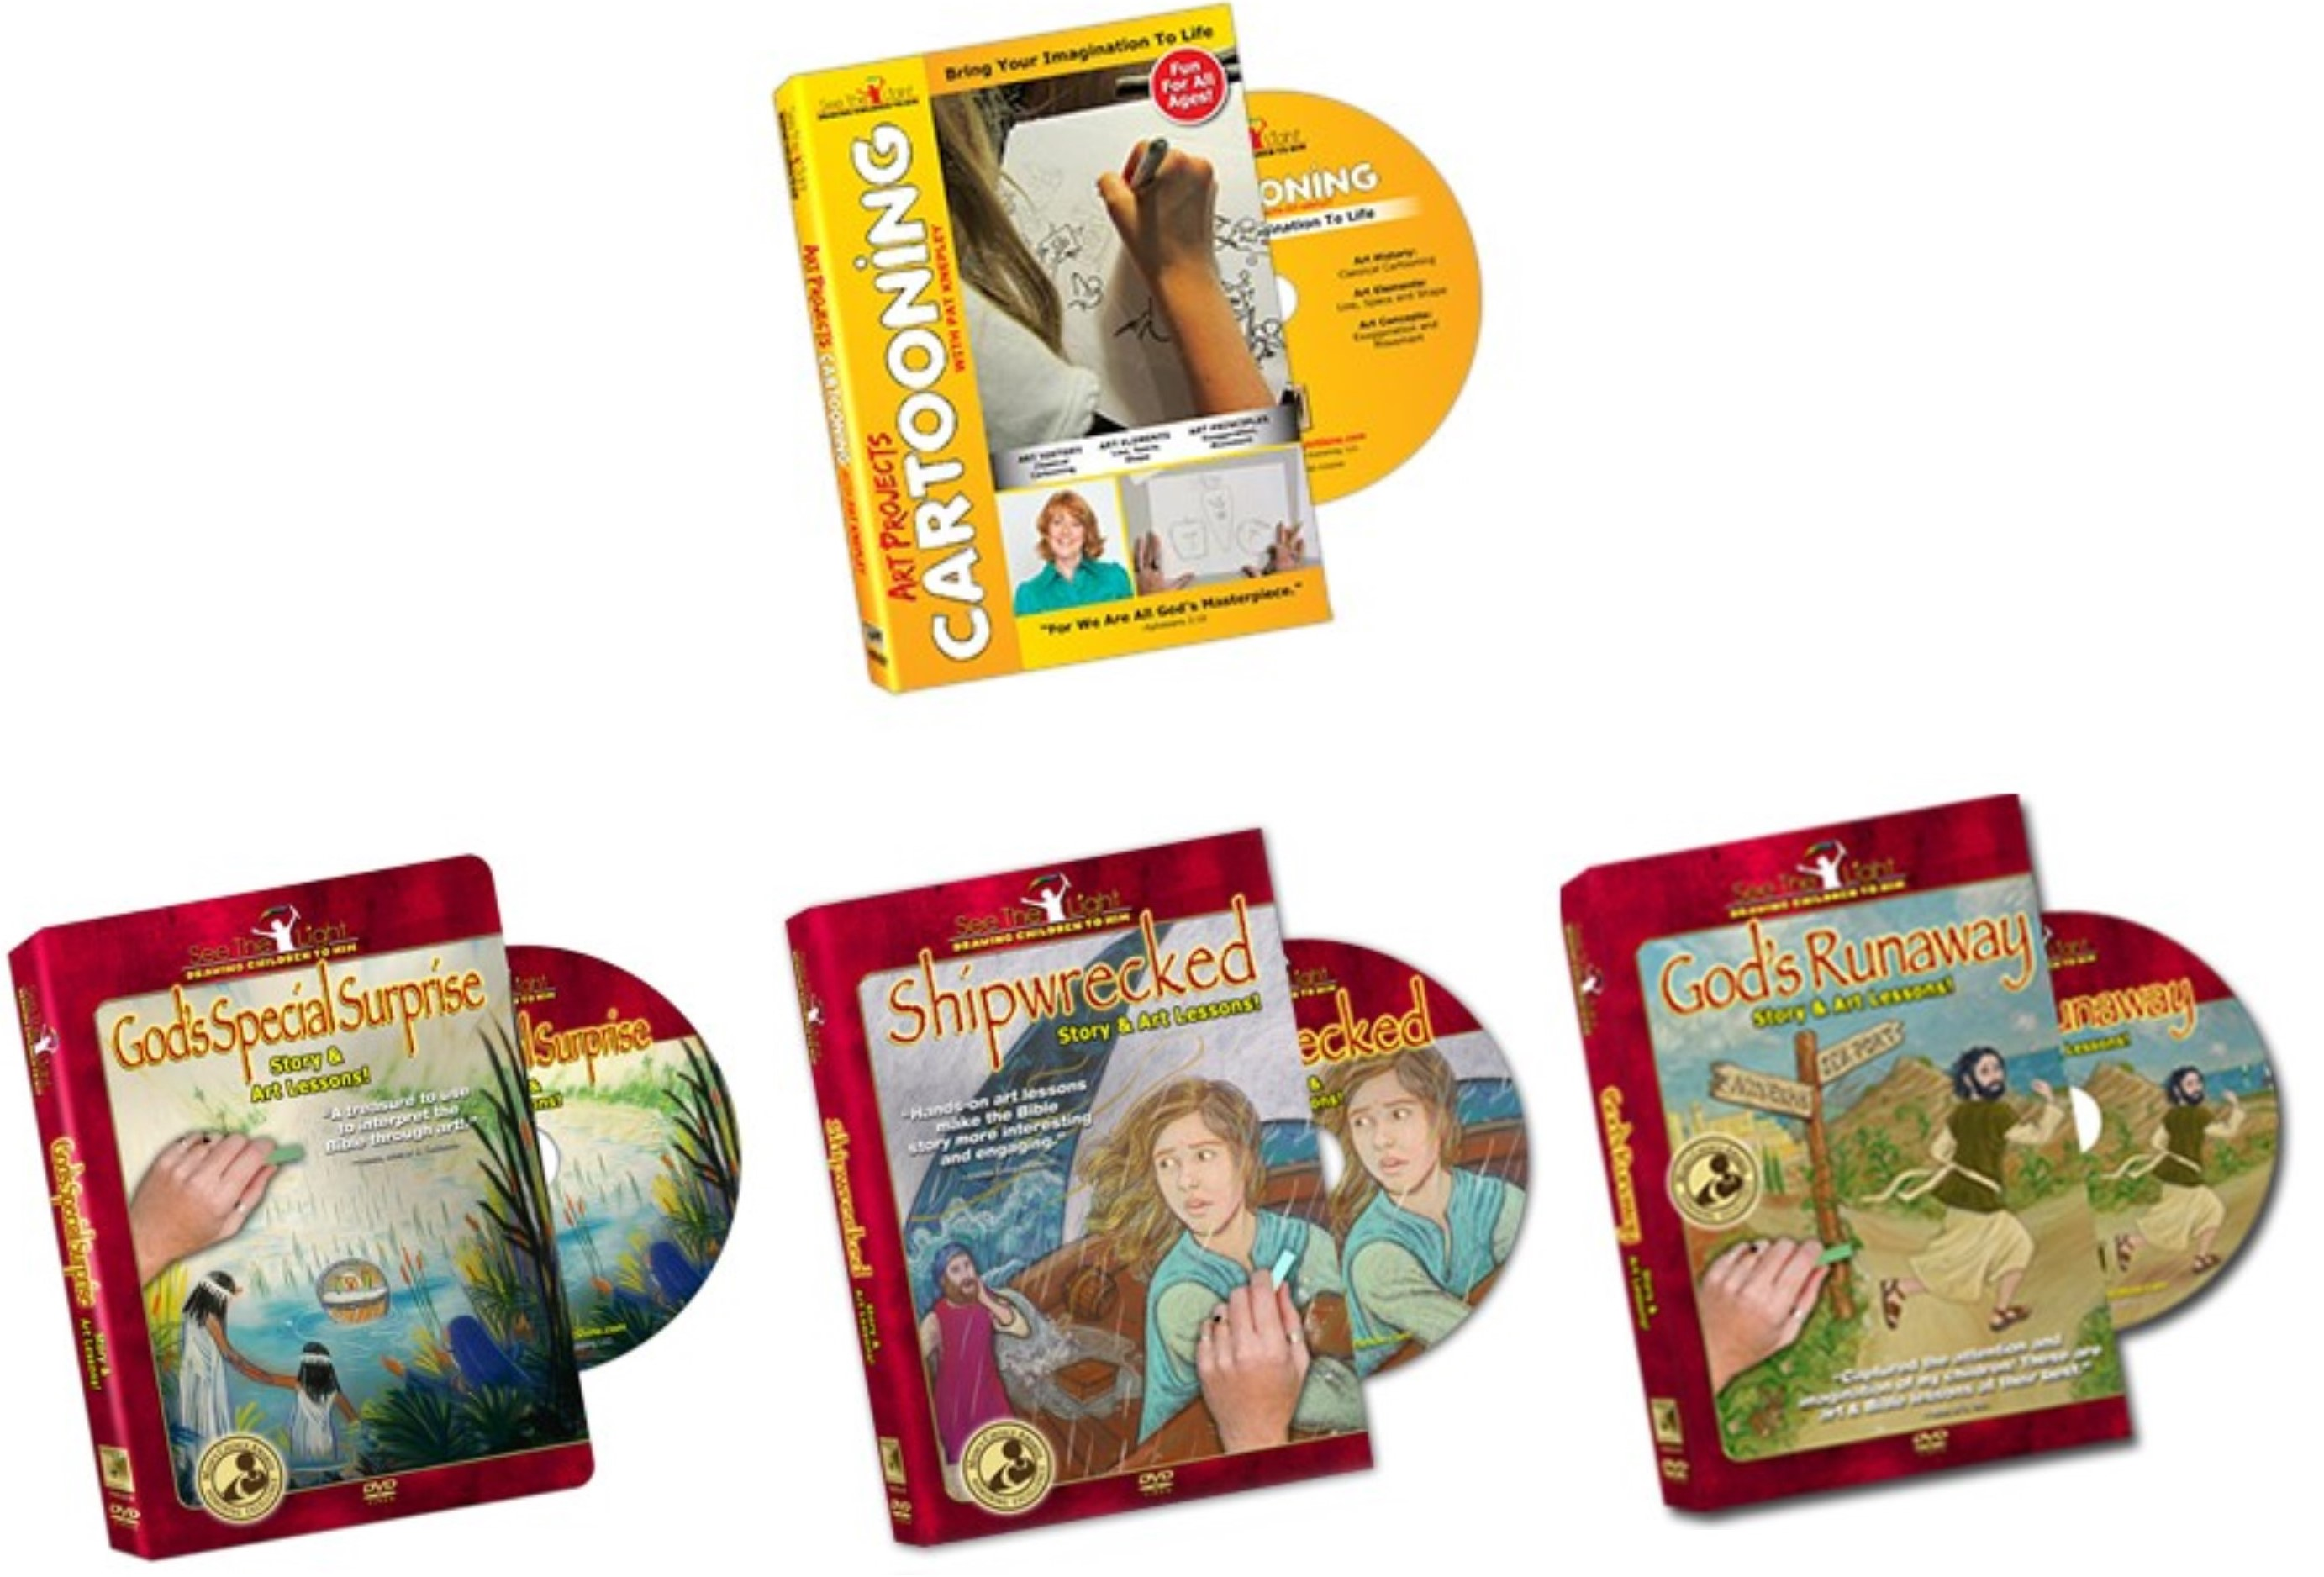 Video Based Art Curriculum for All Ages! (See the Light Review)